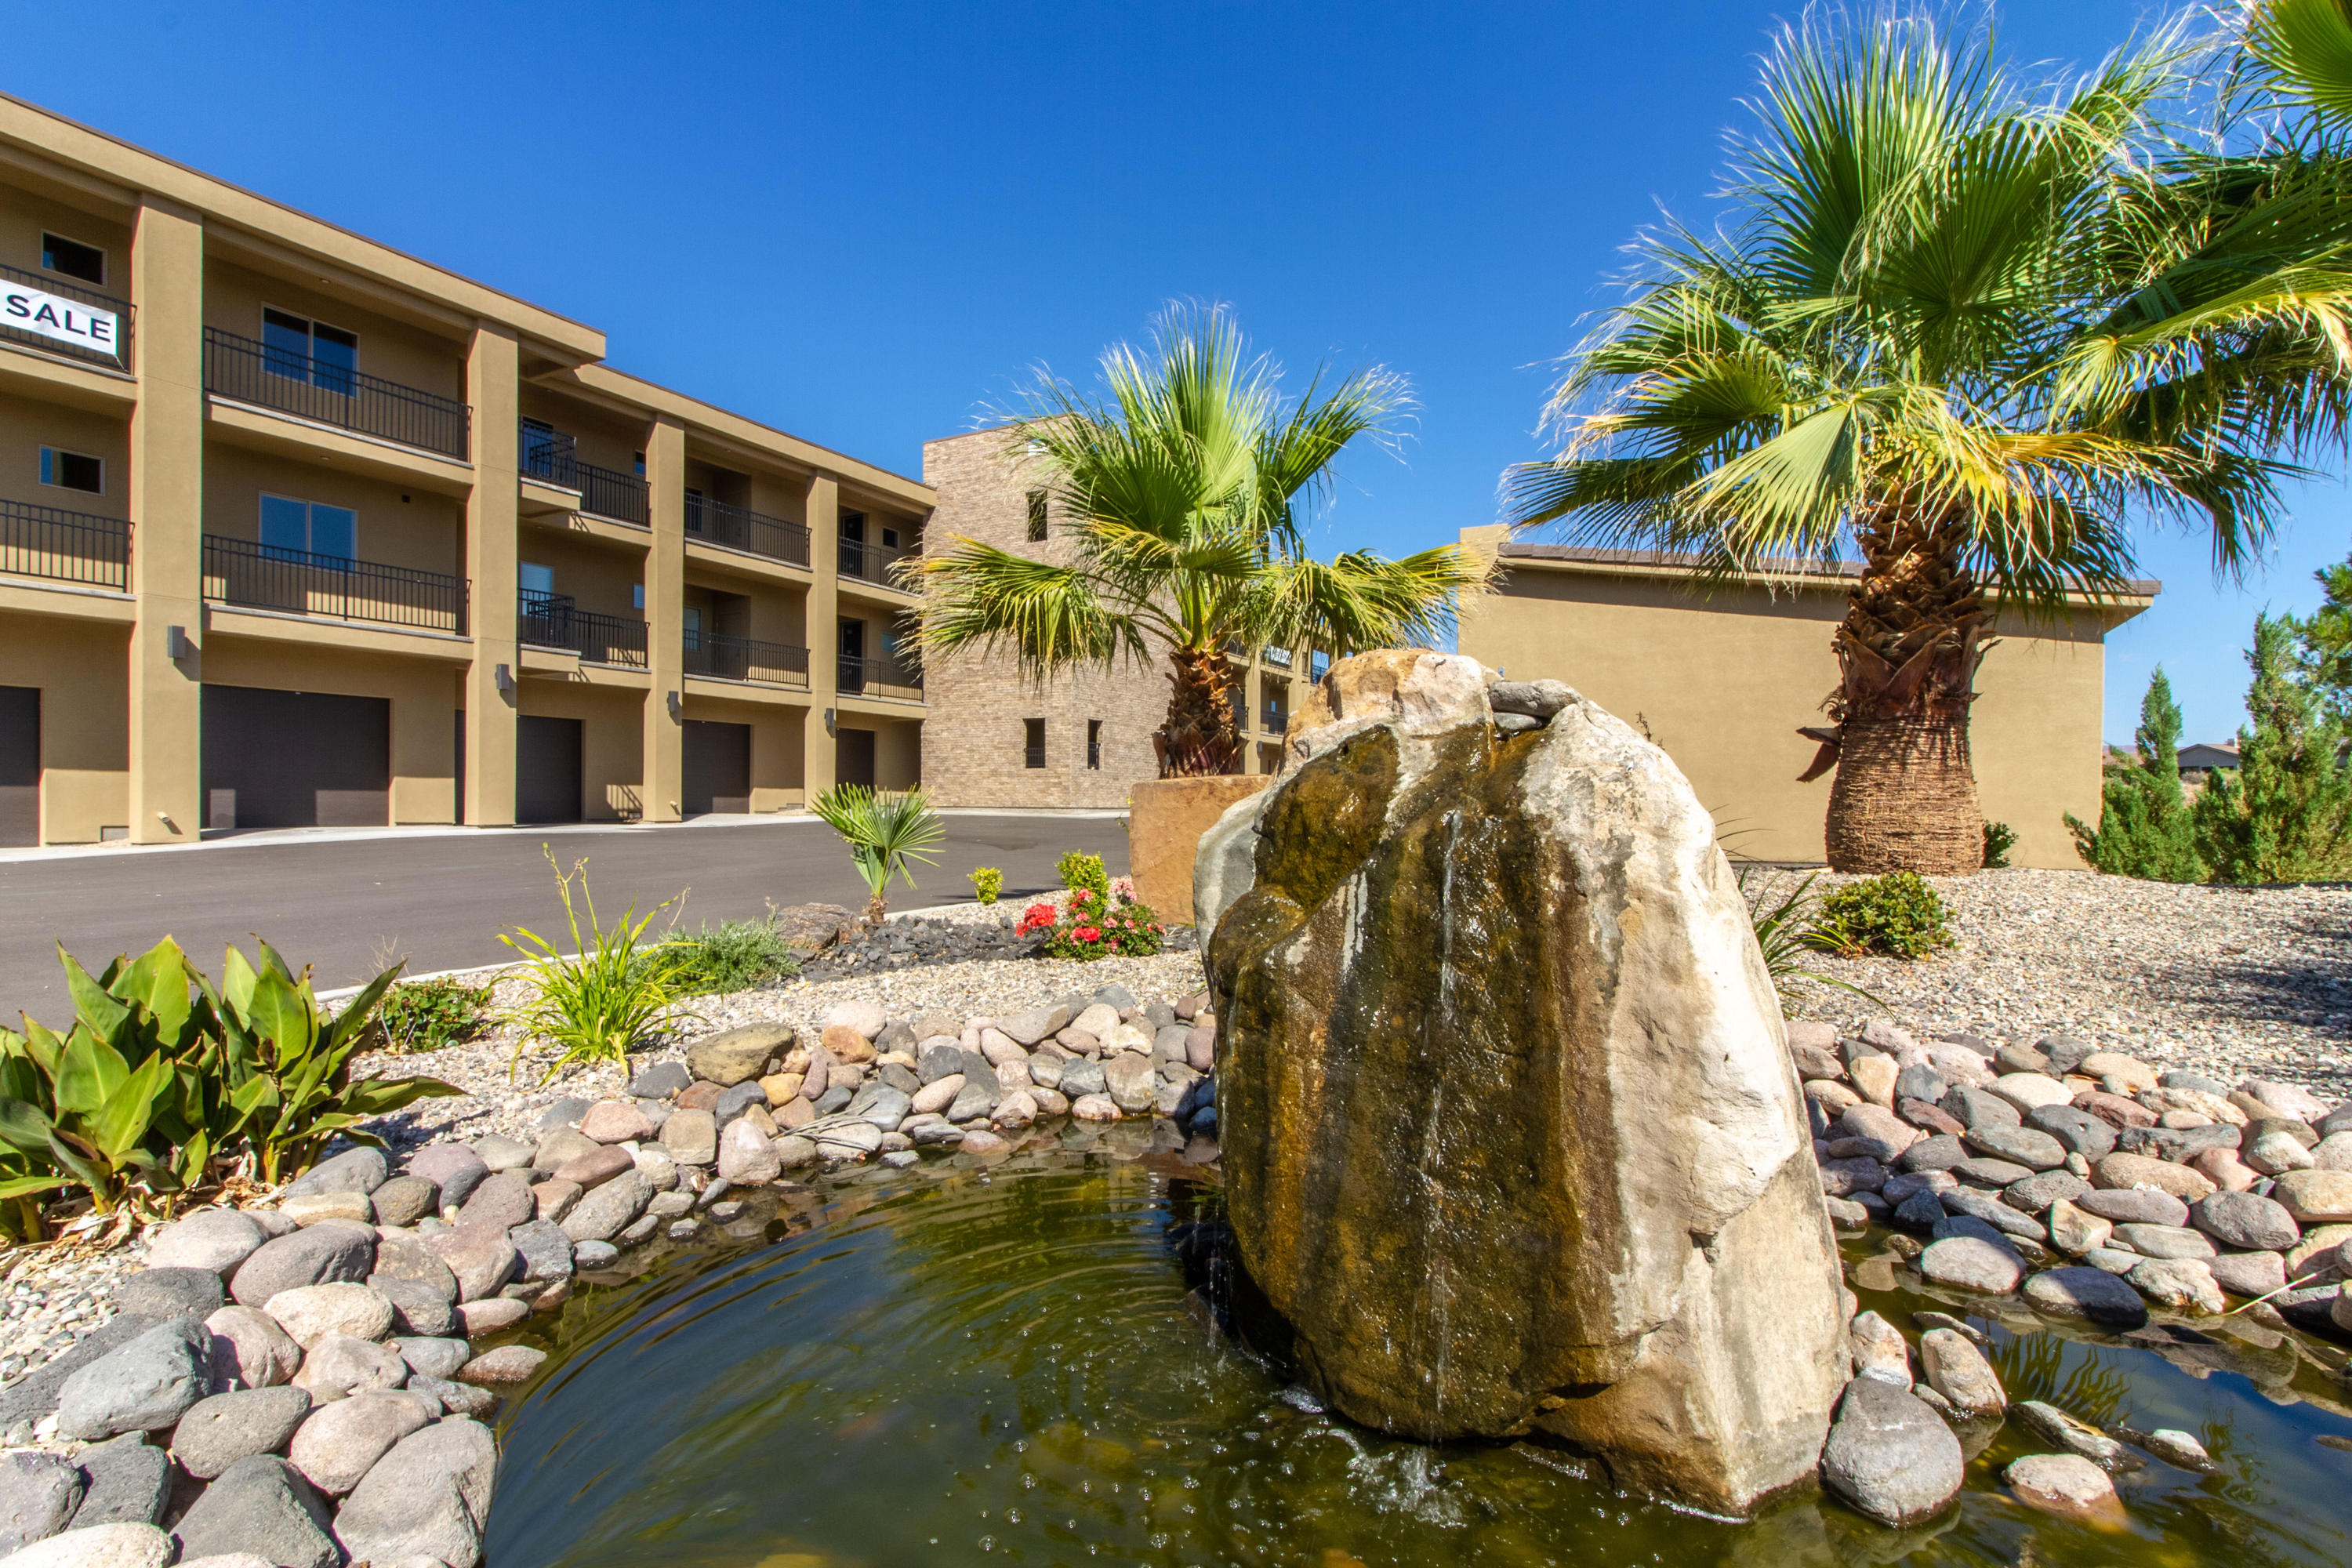 92380 271 Country LN St George UT